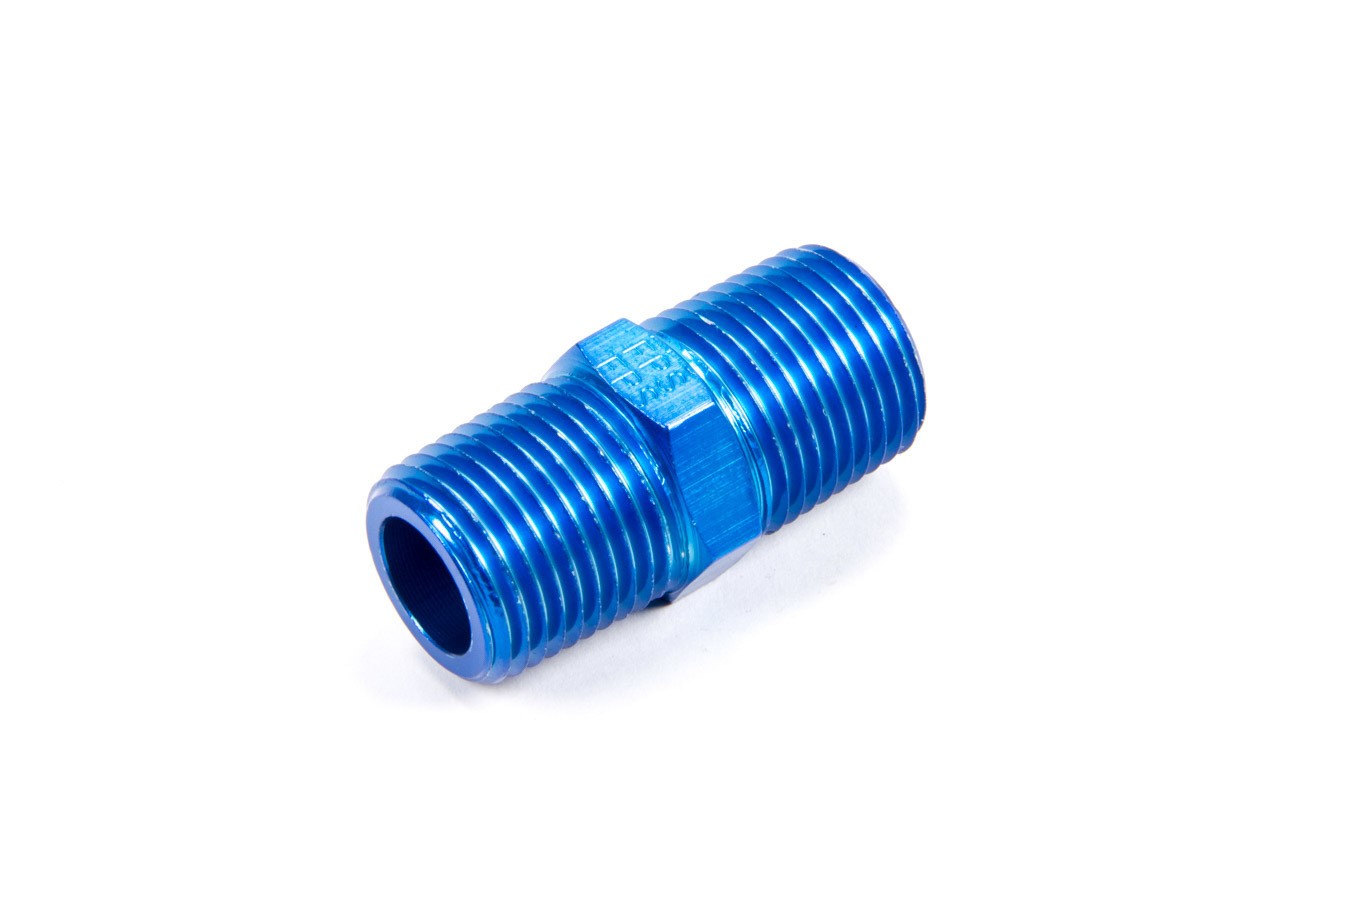 Fragola 491104 Fitting, Adapter, Straight, 1/2 in NPT Male to 1/2 in NPT Male, Aluminum, Blue Anodized, Each